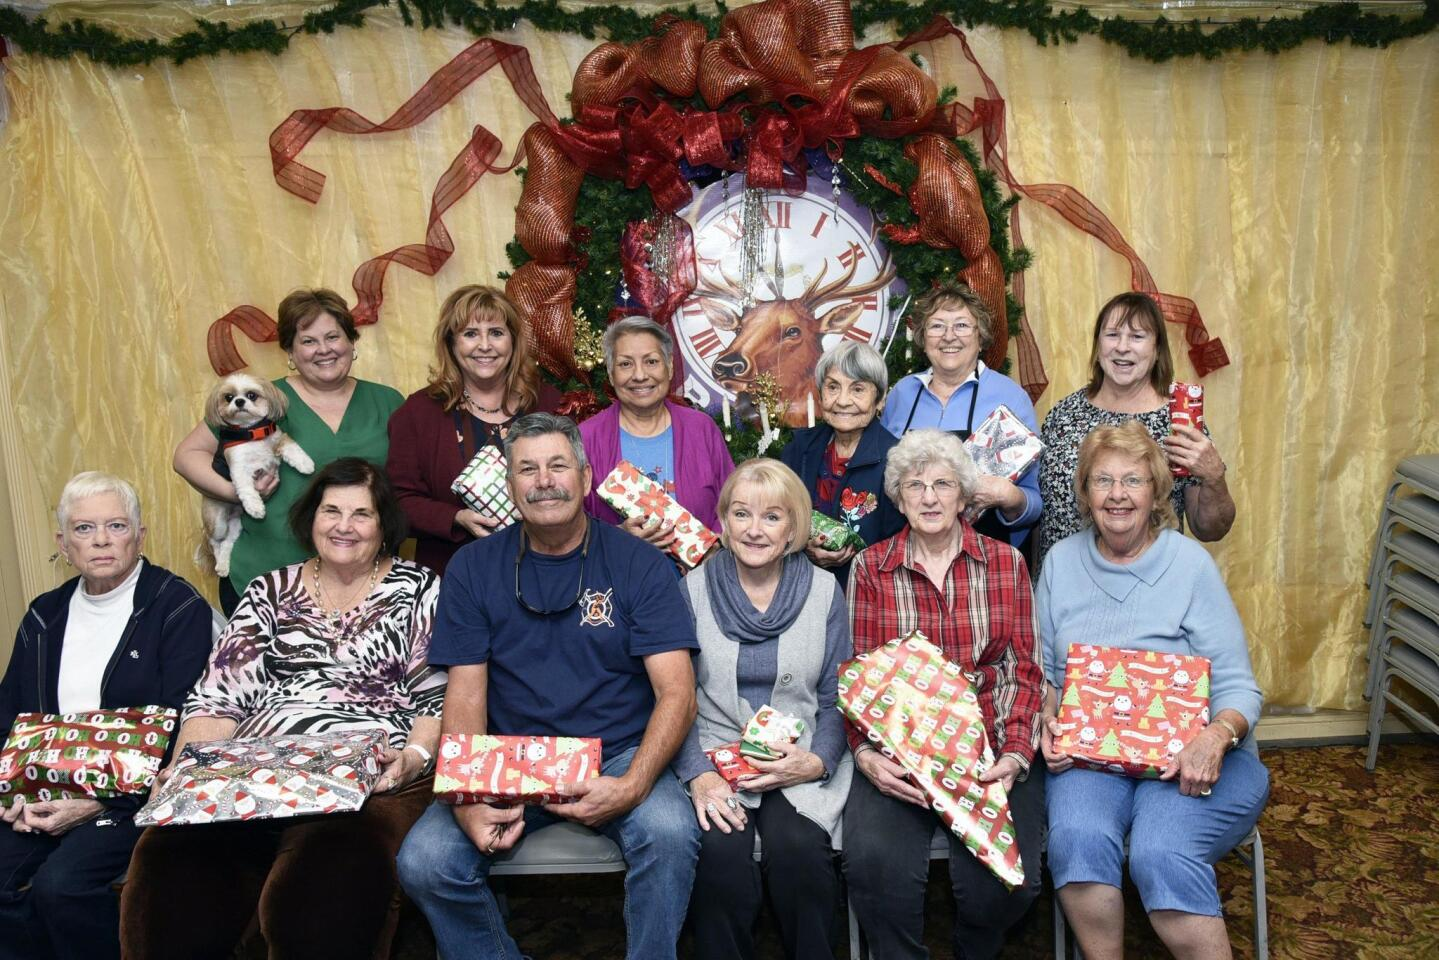 Elk volunteers who participated in wrapping gifts for veteran's families